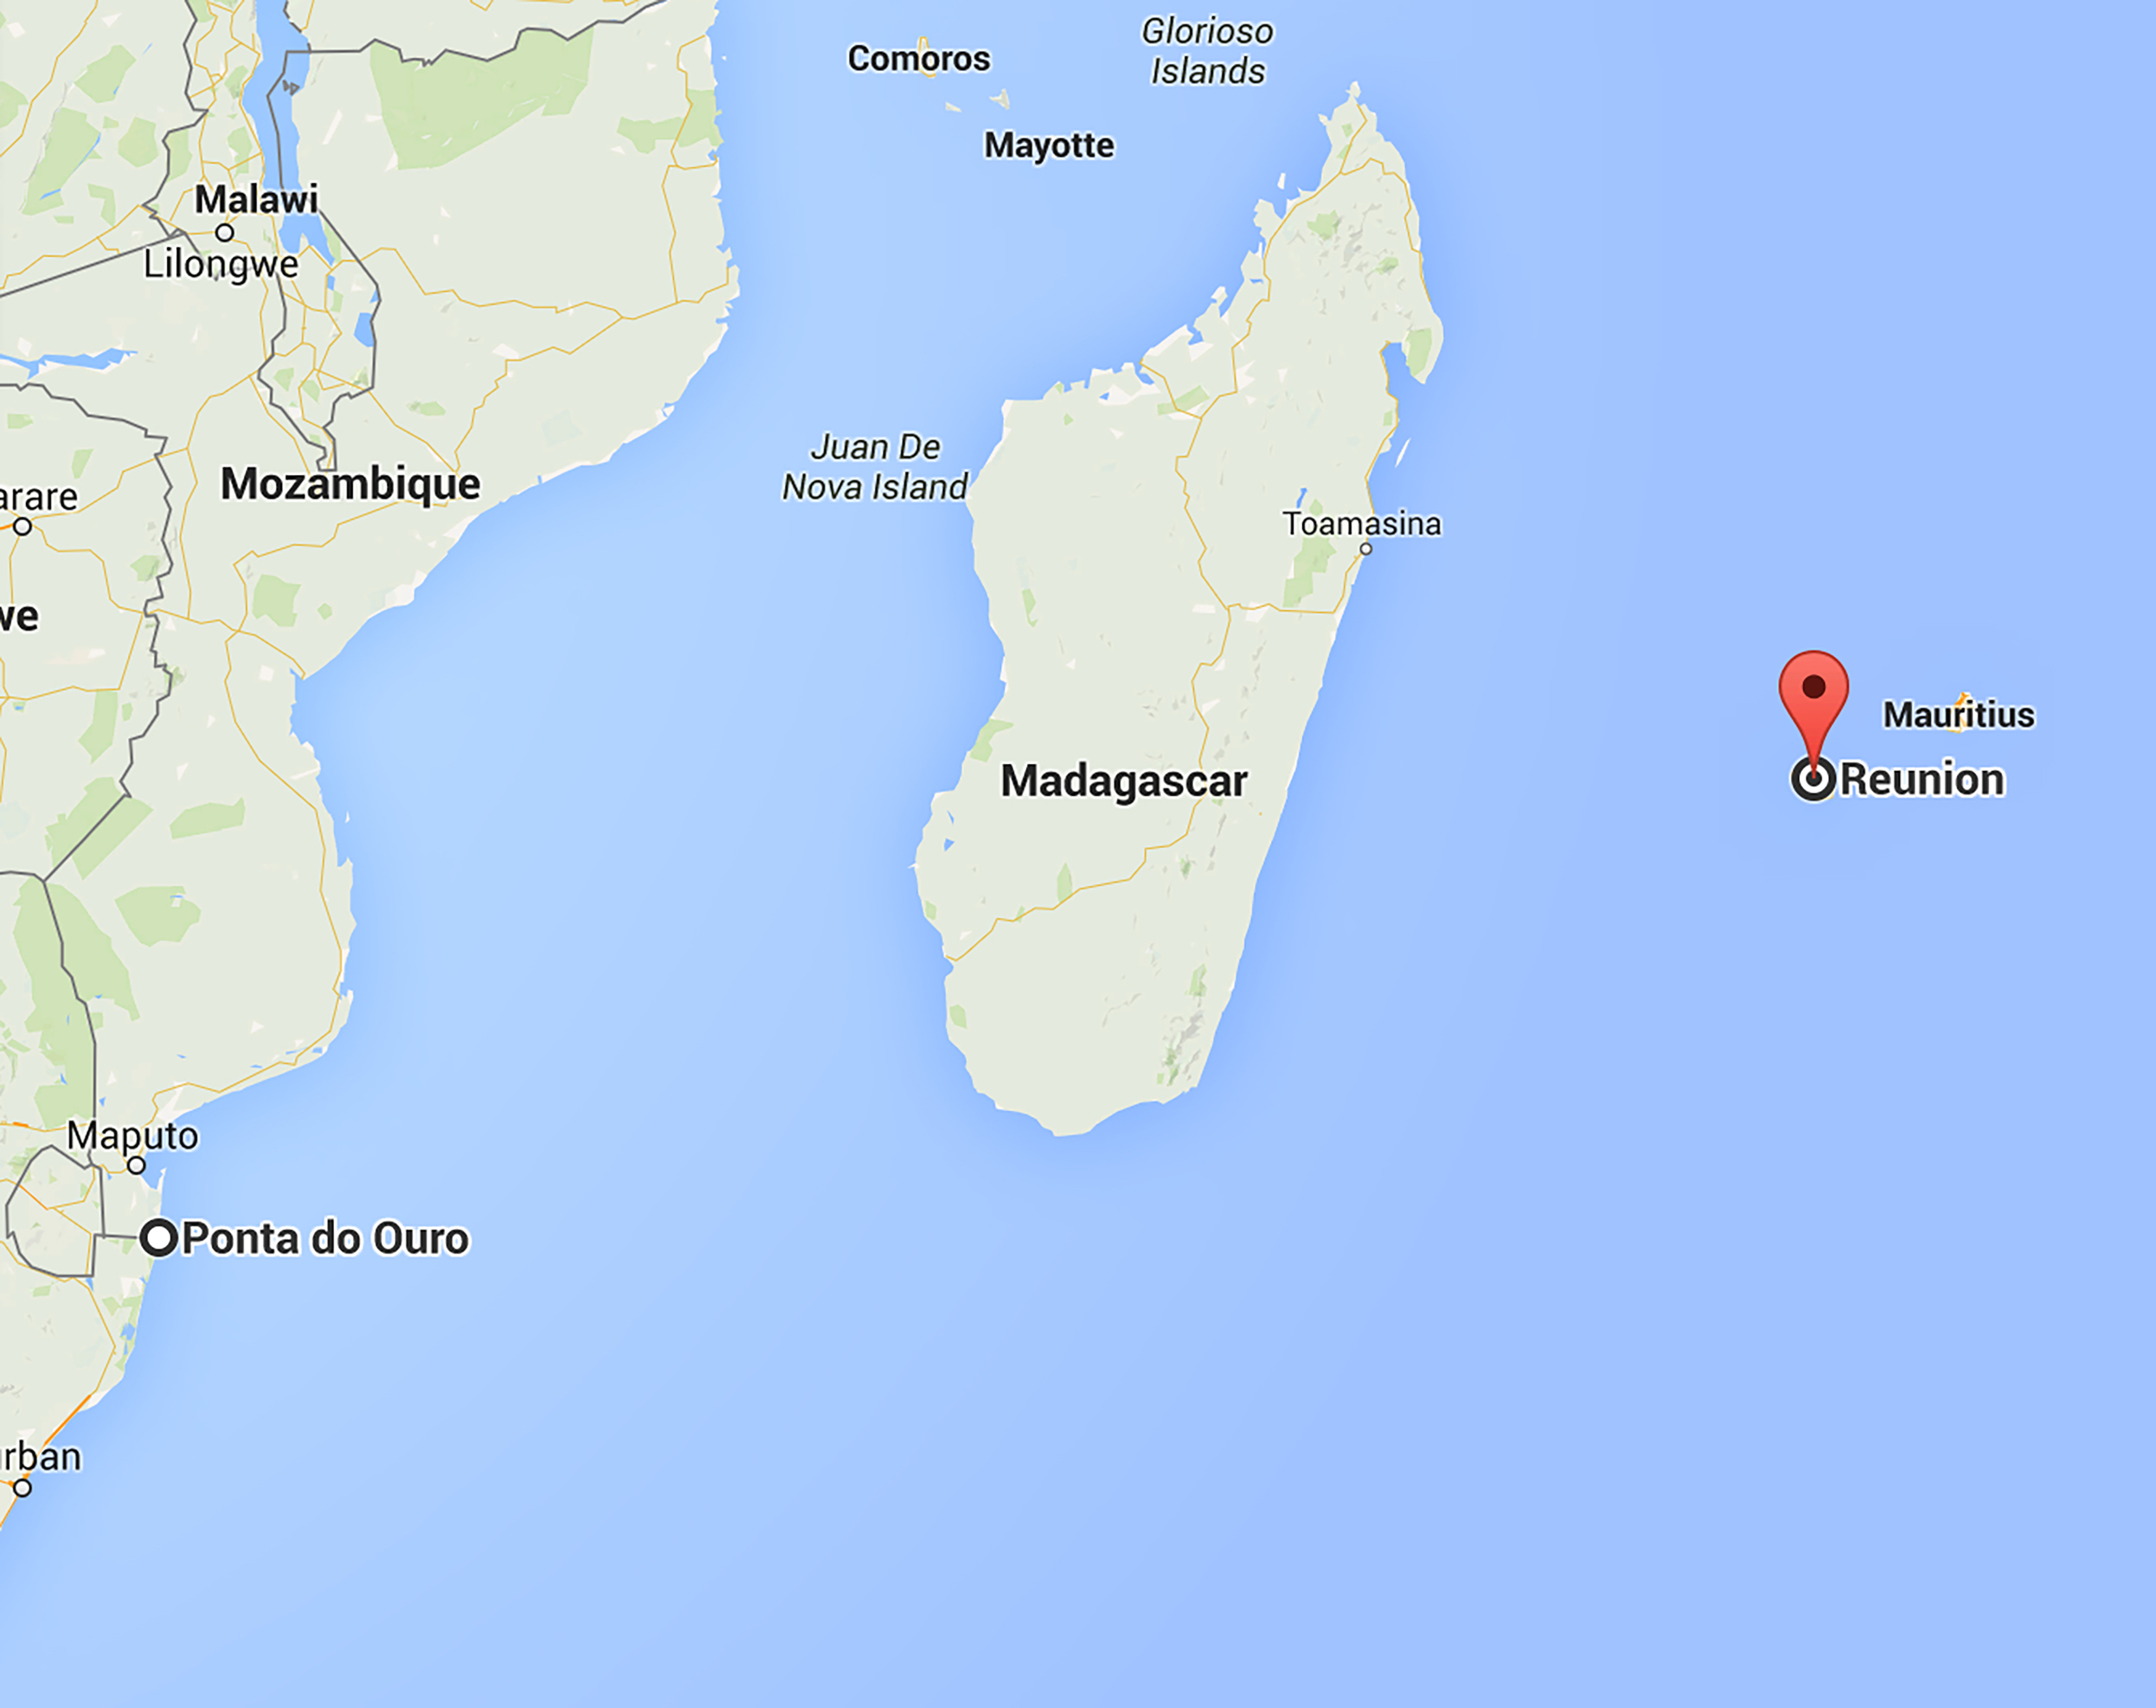 Map Of Reunion Island In The Indian Ocean